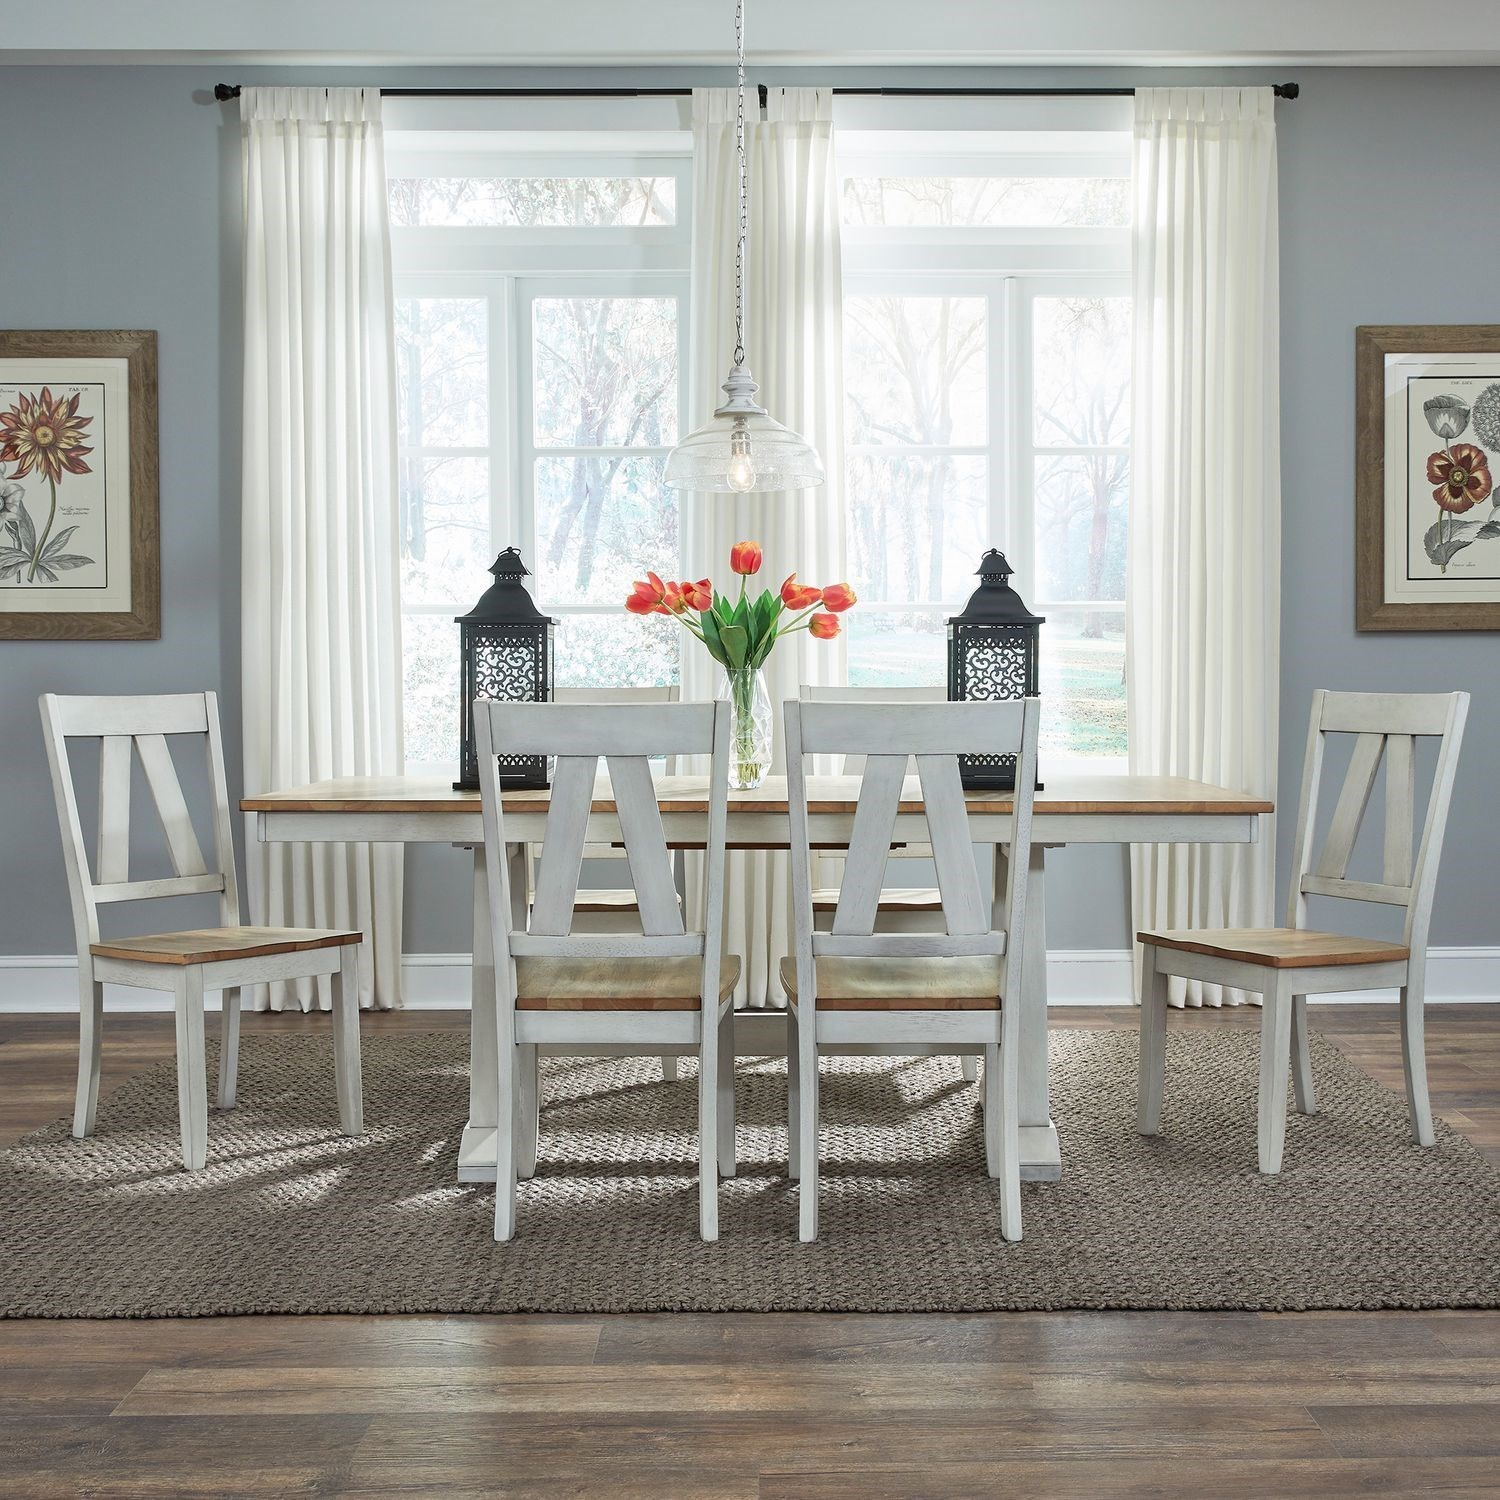 Lindsey Farm 7-Piece Dining Set  by Liberty Furniture at Northeast Factory Direct